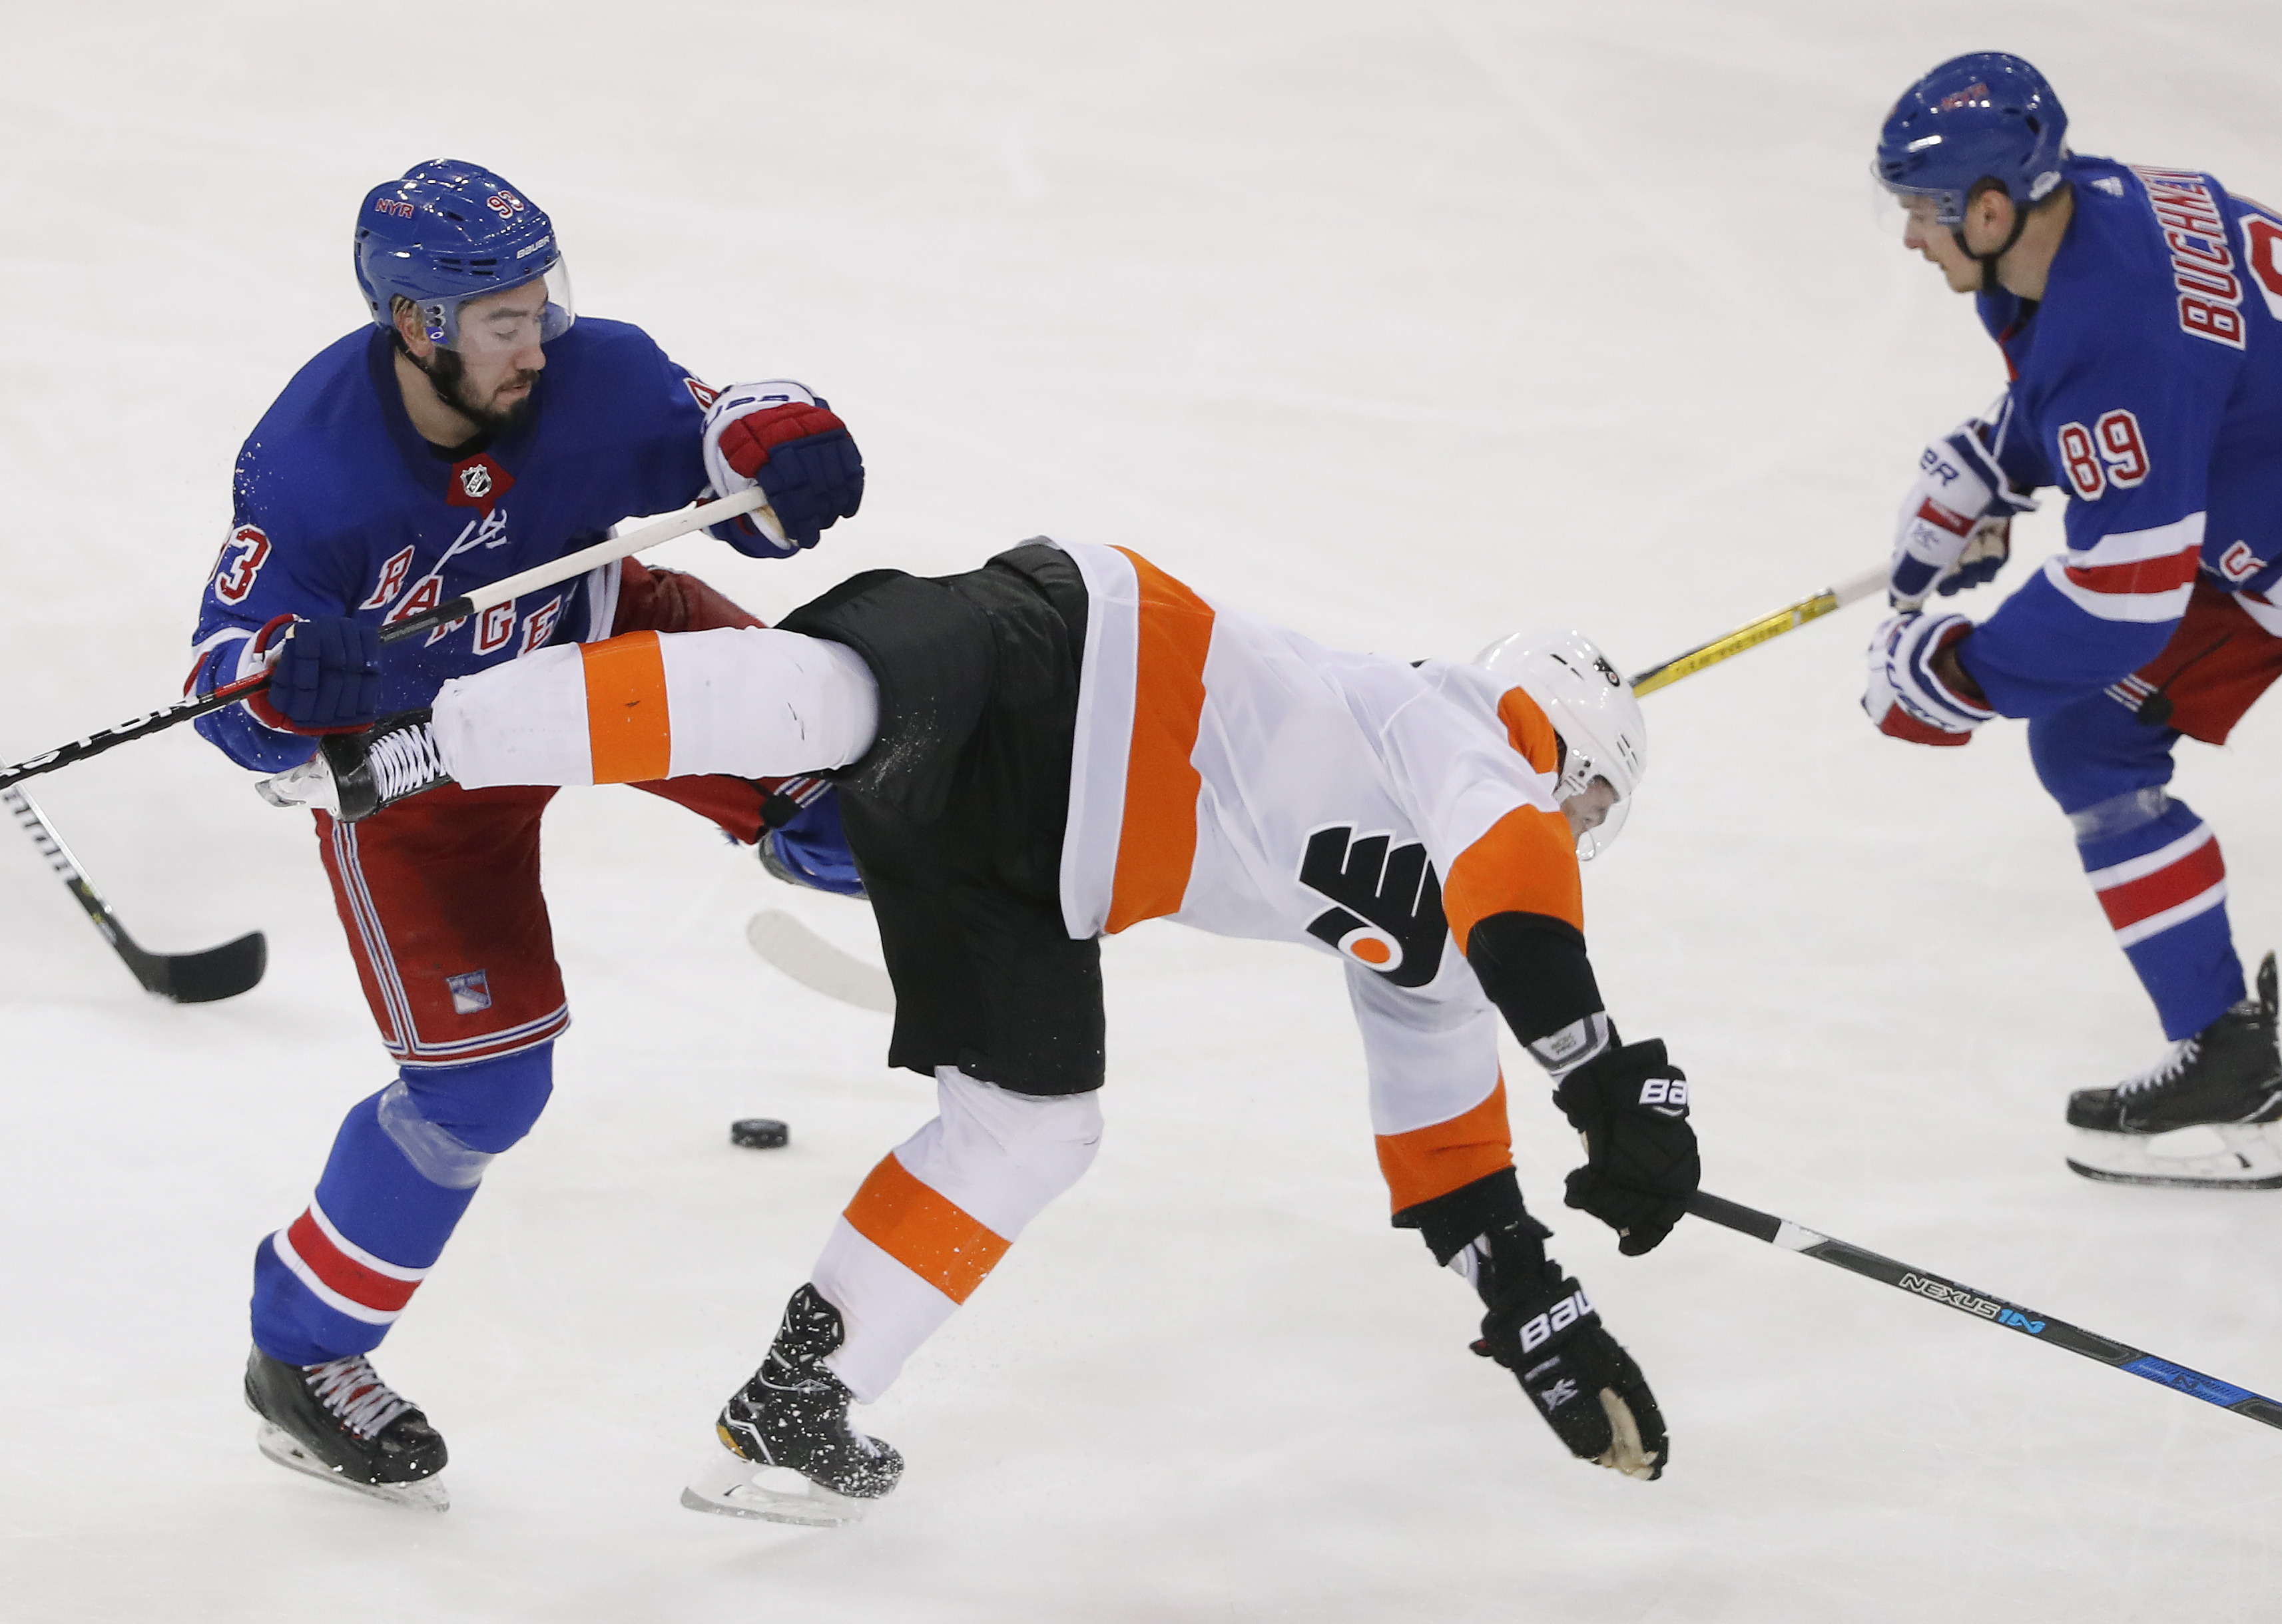 New York Rangers center Mika Zibanejad (93) collides with Philadelphia Flyers defenseman Ivan Provorov (9) during the third period of an NHL hockey game, Tuesday, Jan. 16, 2018, in New York. The Rangers won 5-1.